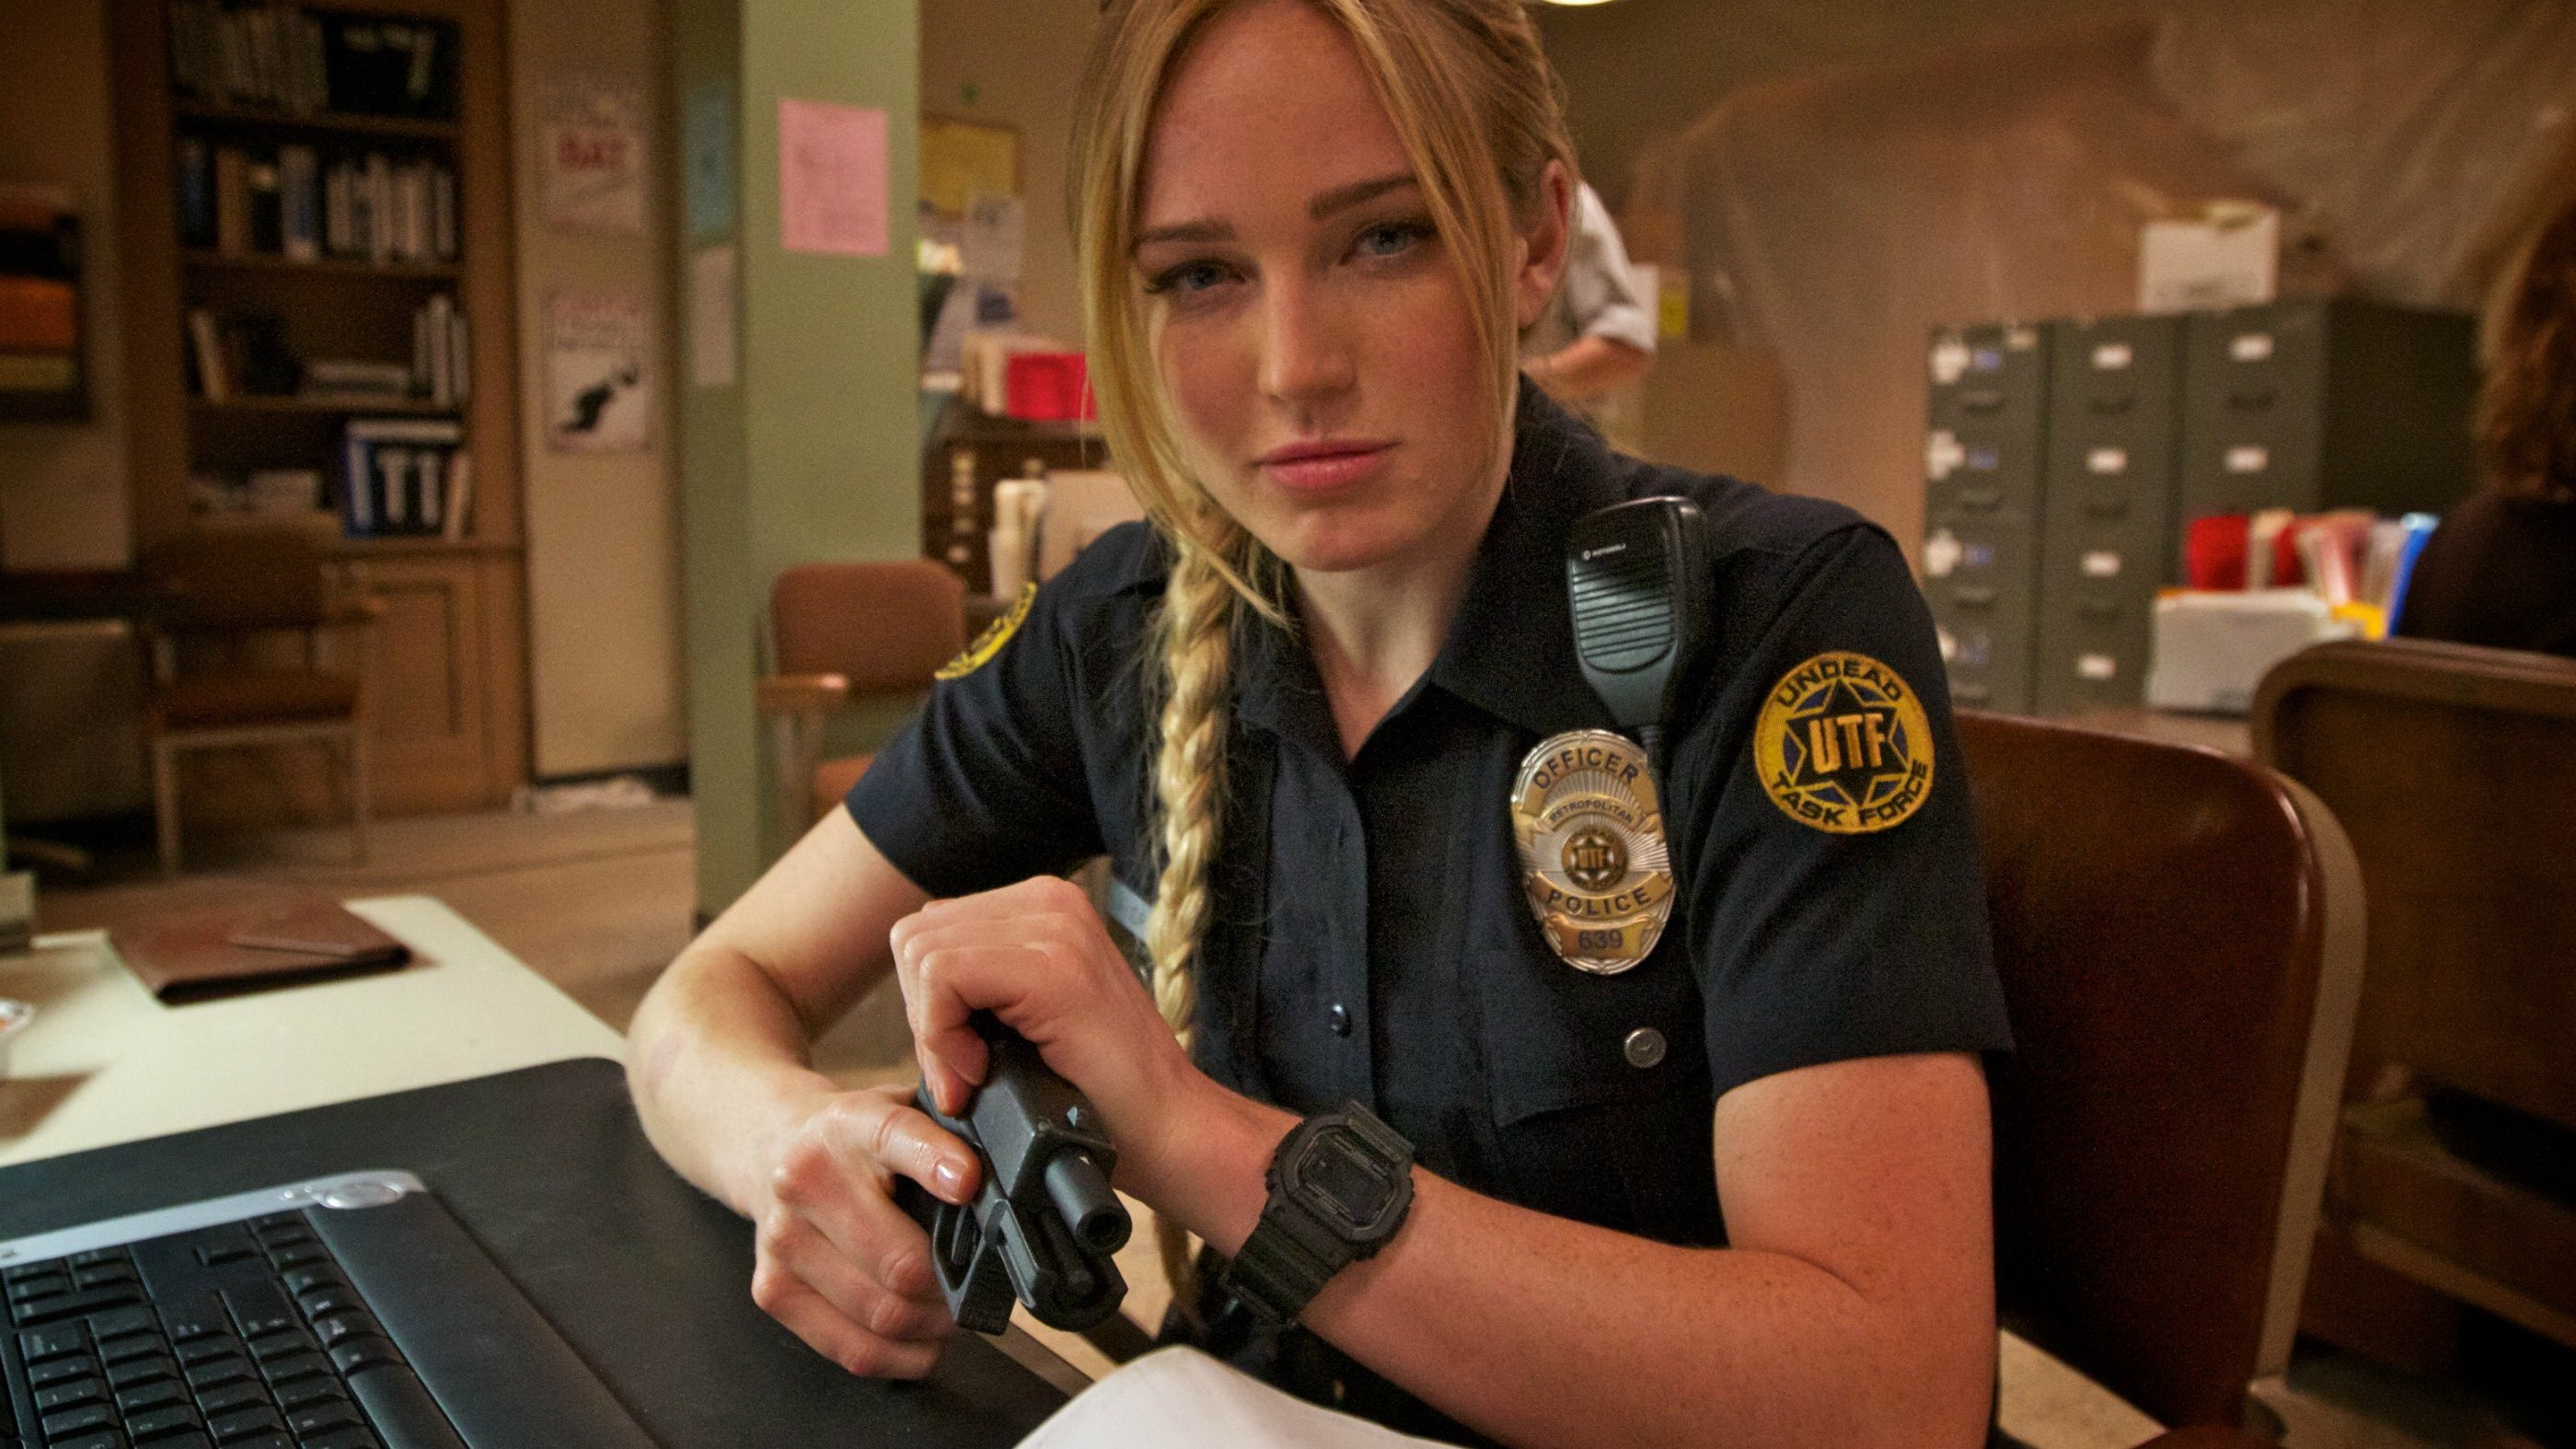 2799x1574 Caity Lotz, Blonde, Police, Glock 17, Death Valley, USA Wallpapers HD /  Desktop and Mobile Backgrounds